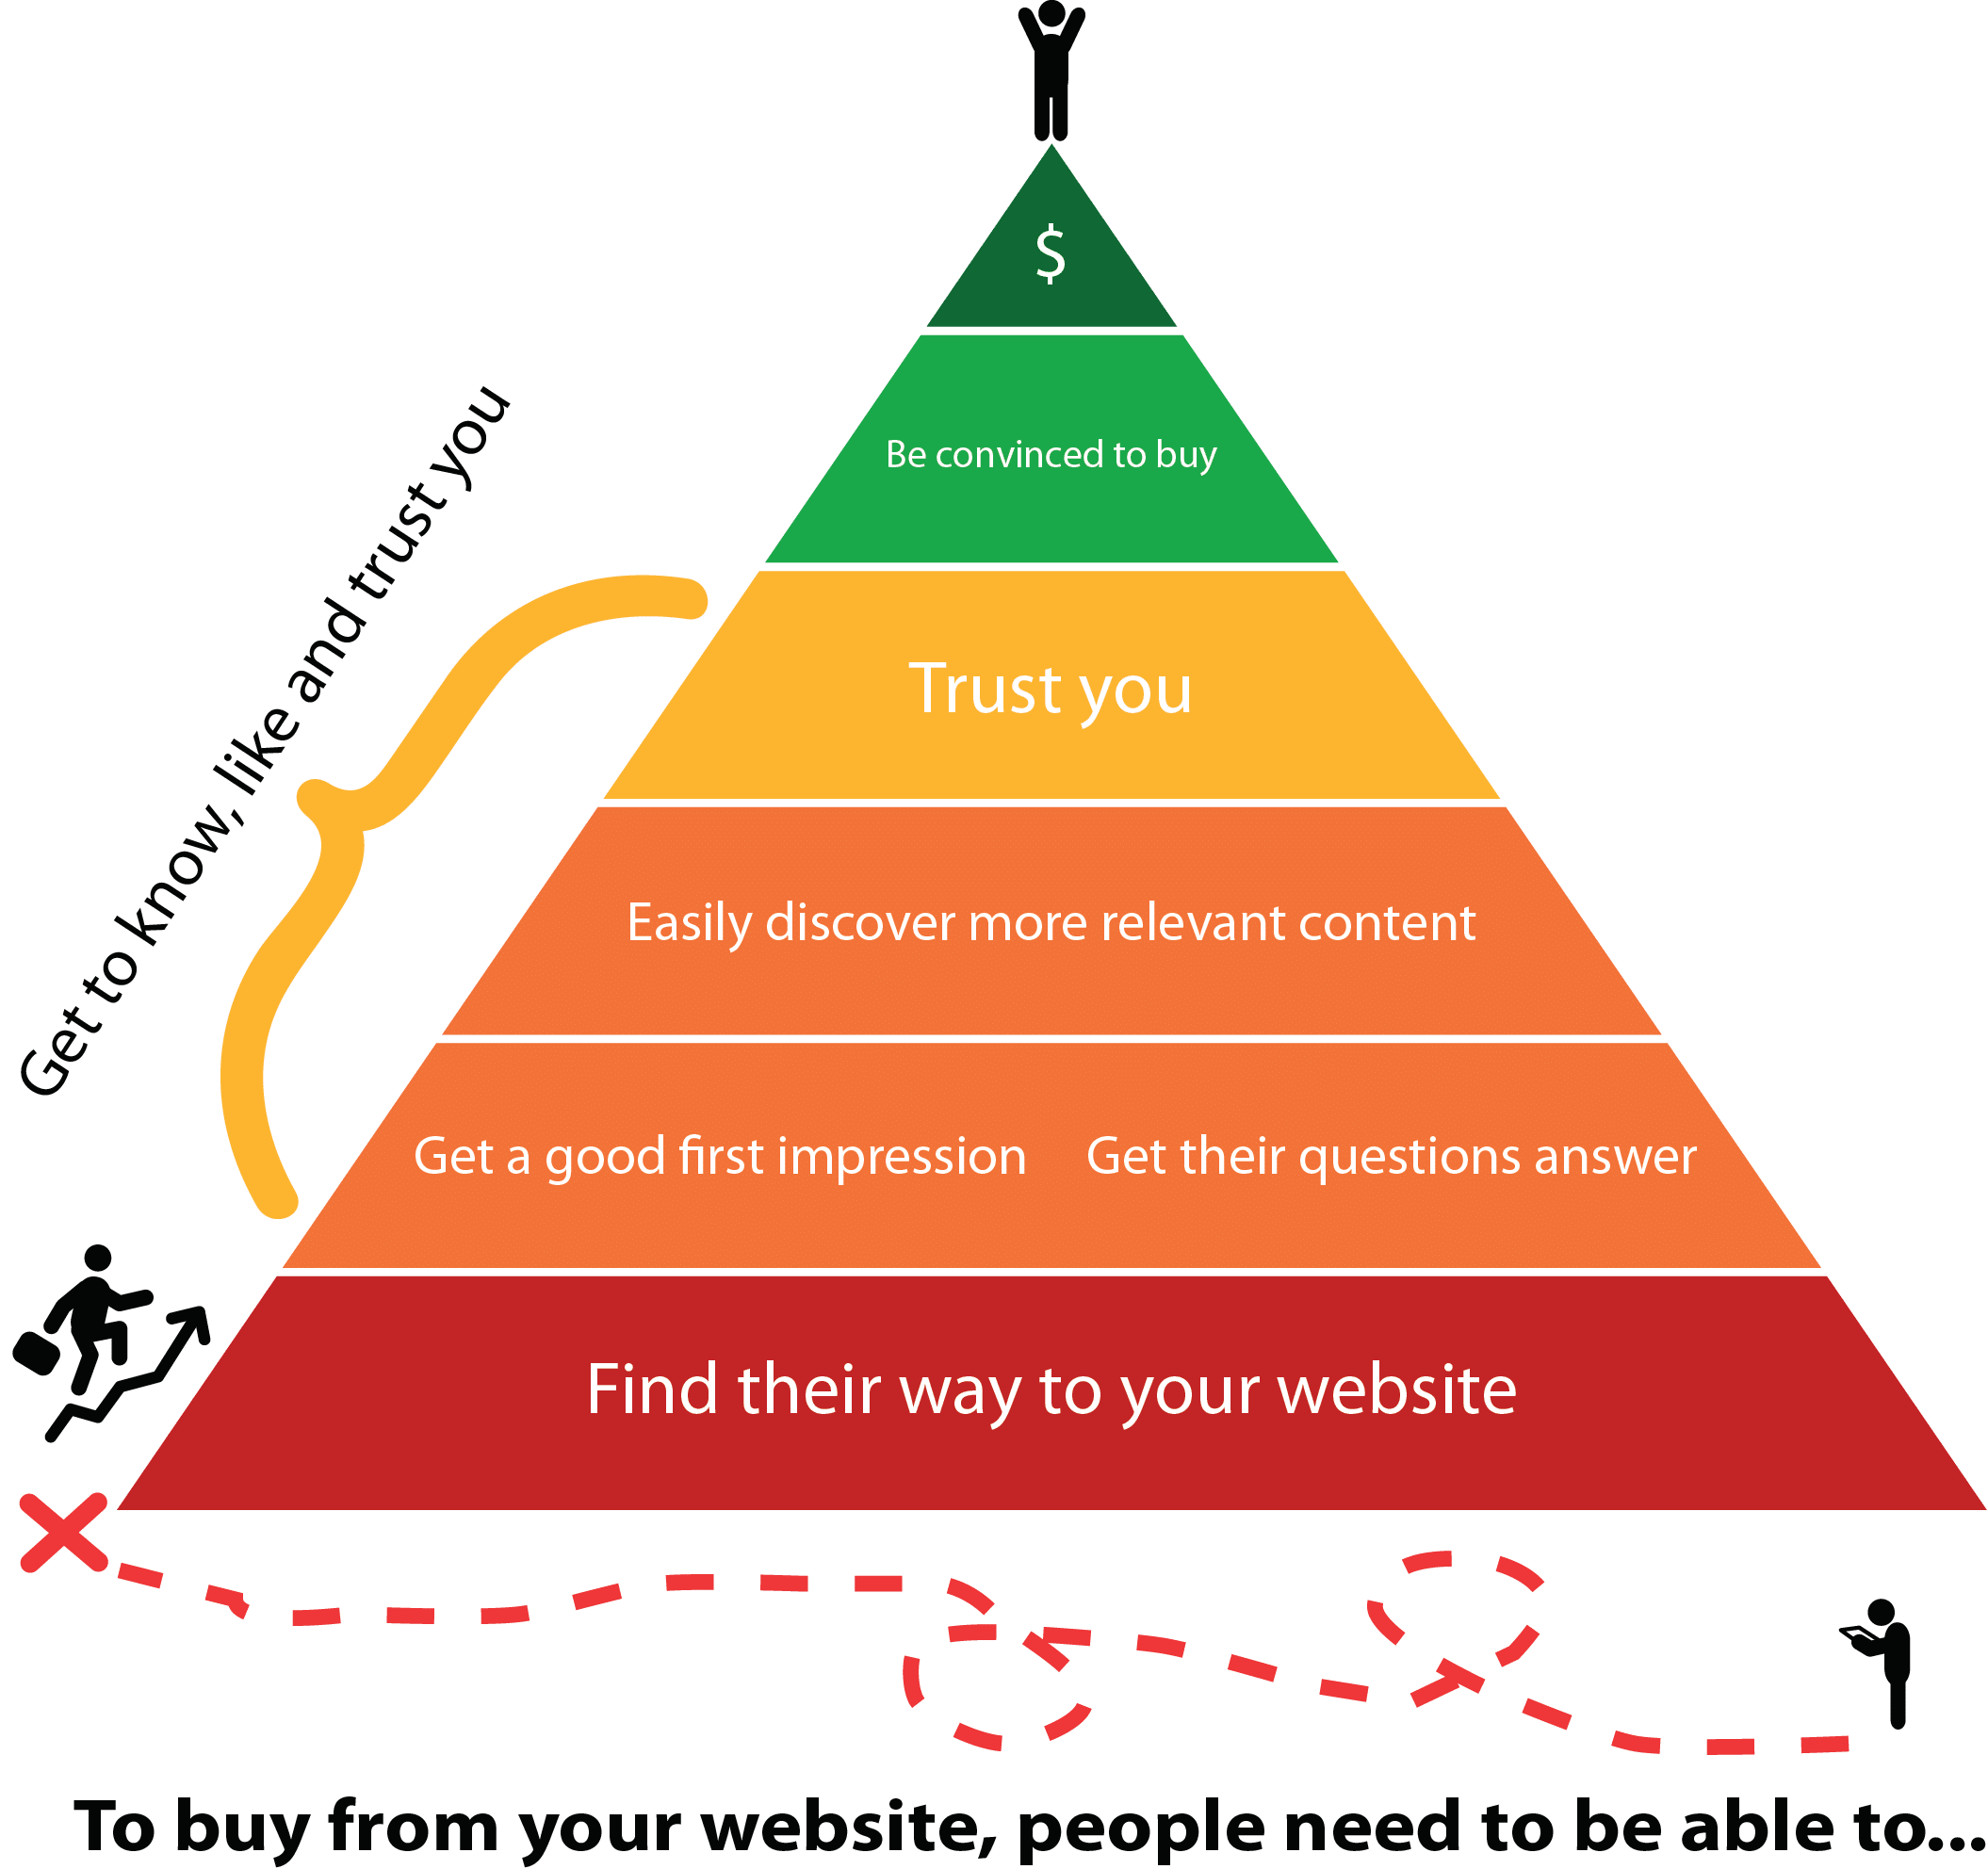 How to get people to buy your product online